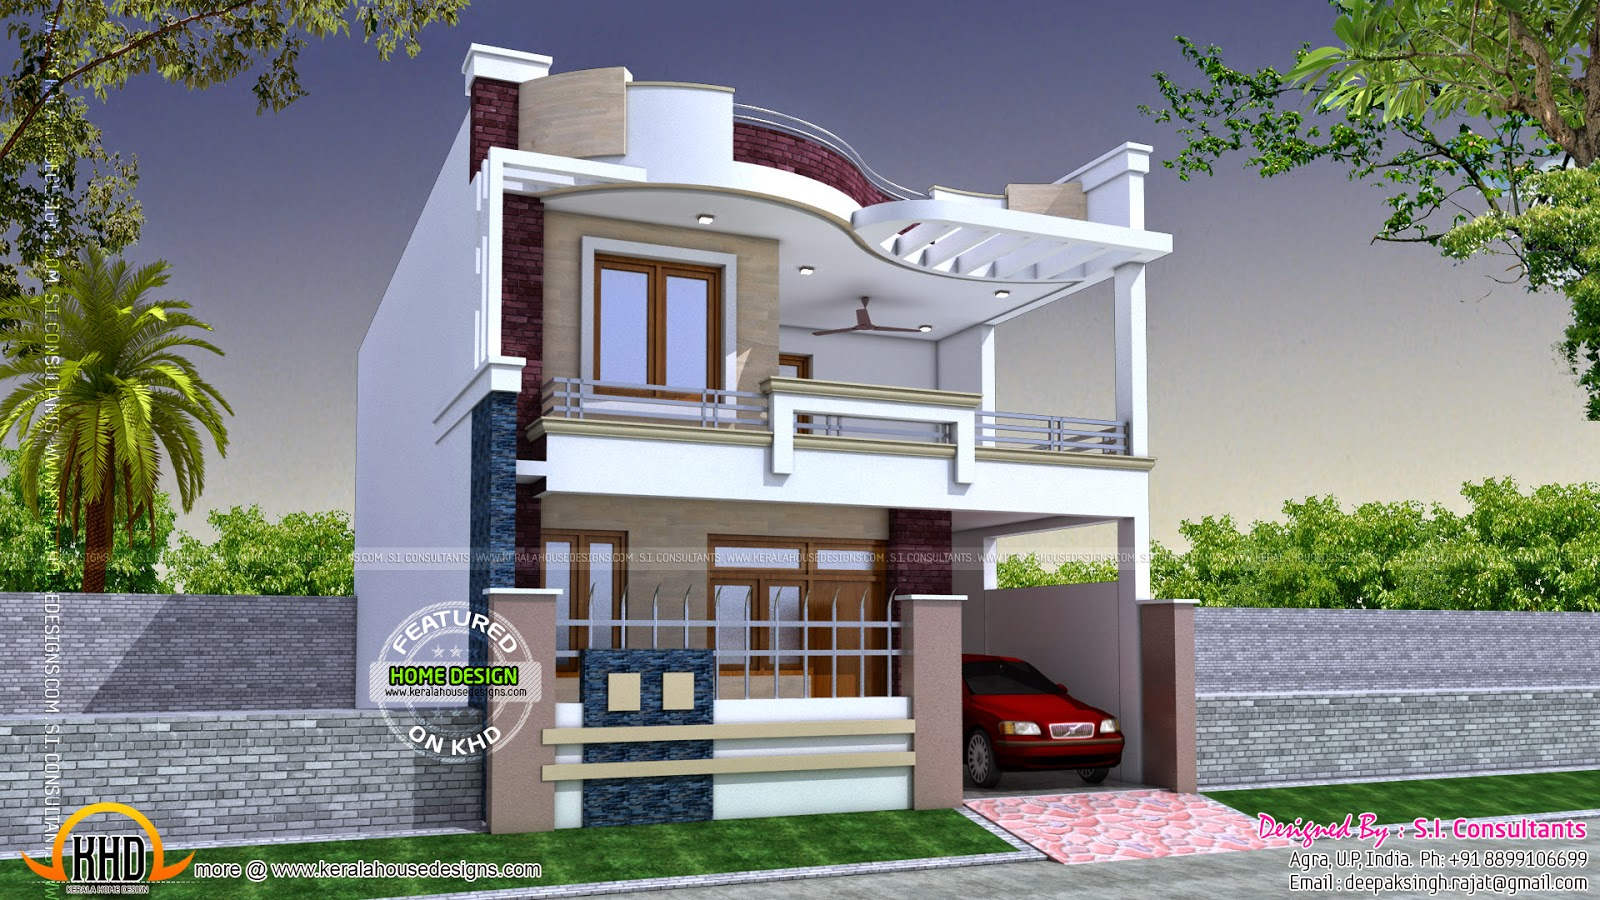 small house architecture design in india minimalist home ForArchitecture Design Small House India